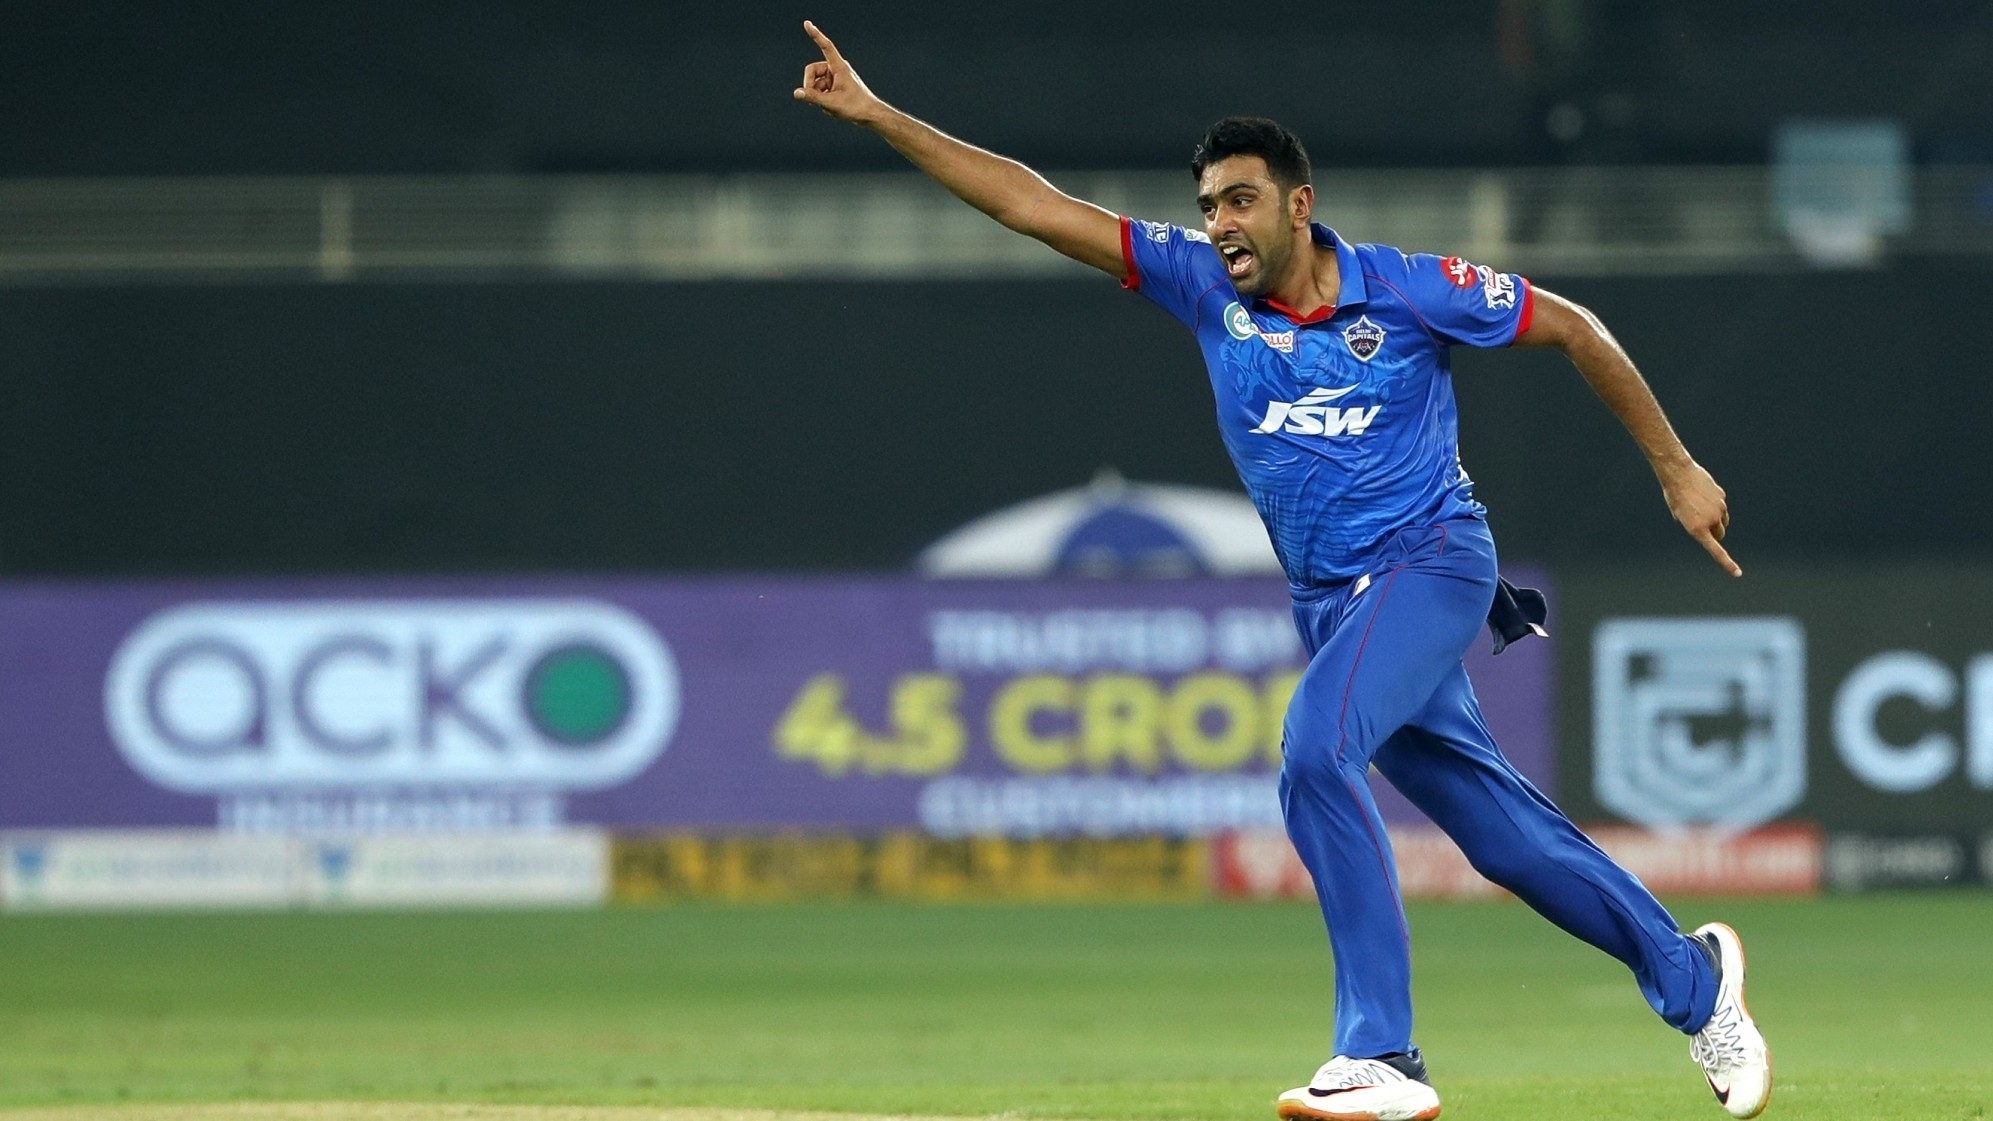 IPL 2020: Purple and Orange Cap an eye-wash, it's about contributing towards victory, says R Ashwin